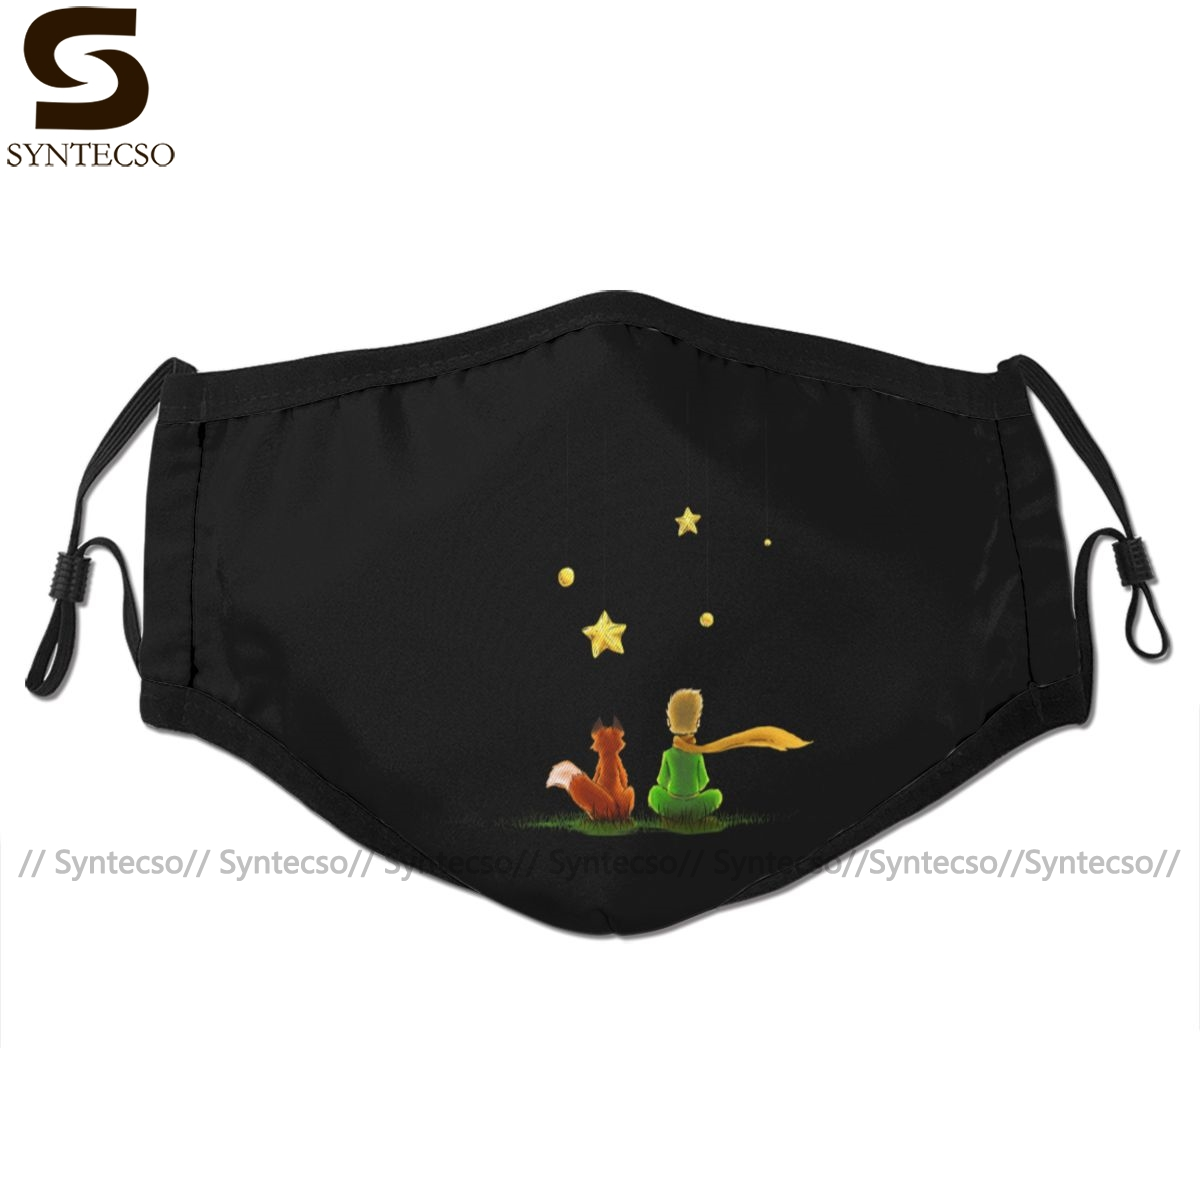 Prince Mouth Face Mask Le Petit Prince Facial Mask Kawai Funny With 2 Filters For Adult